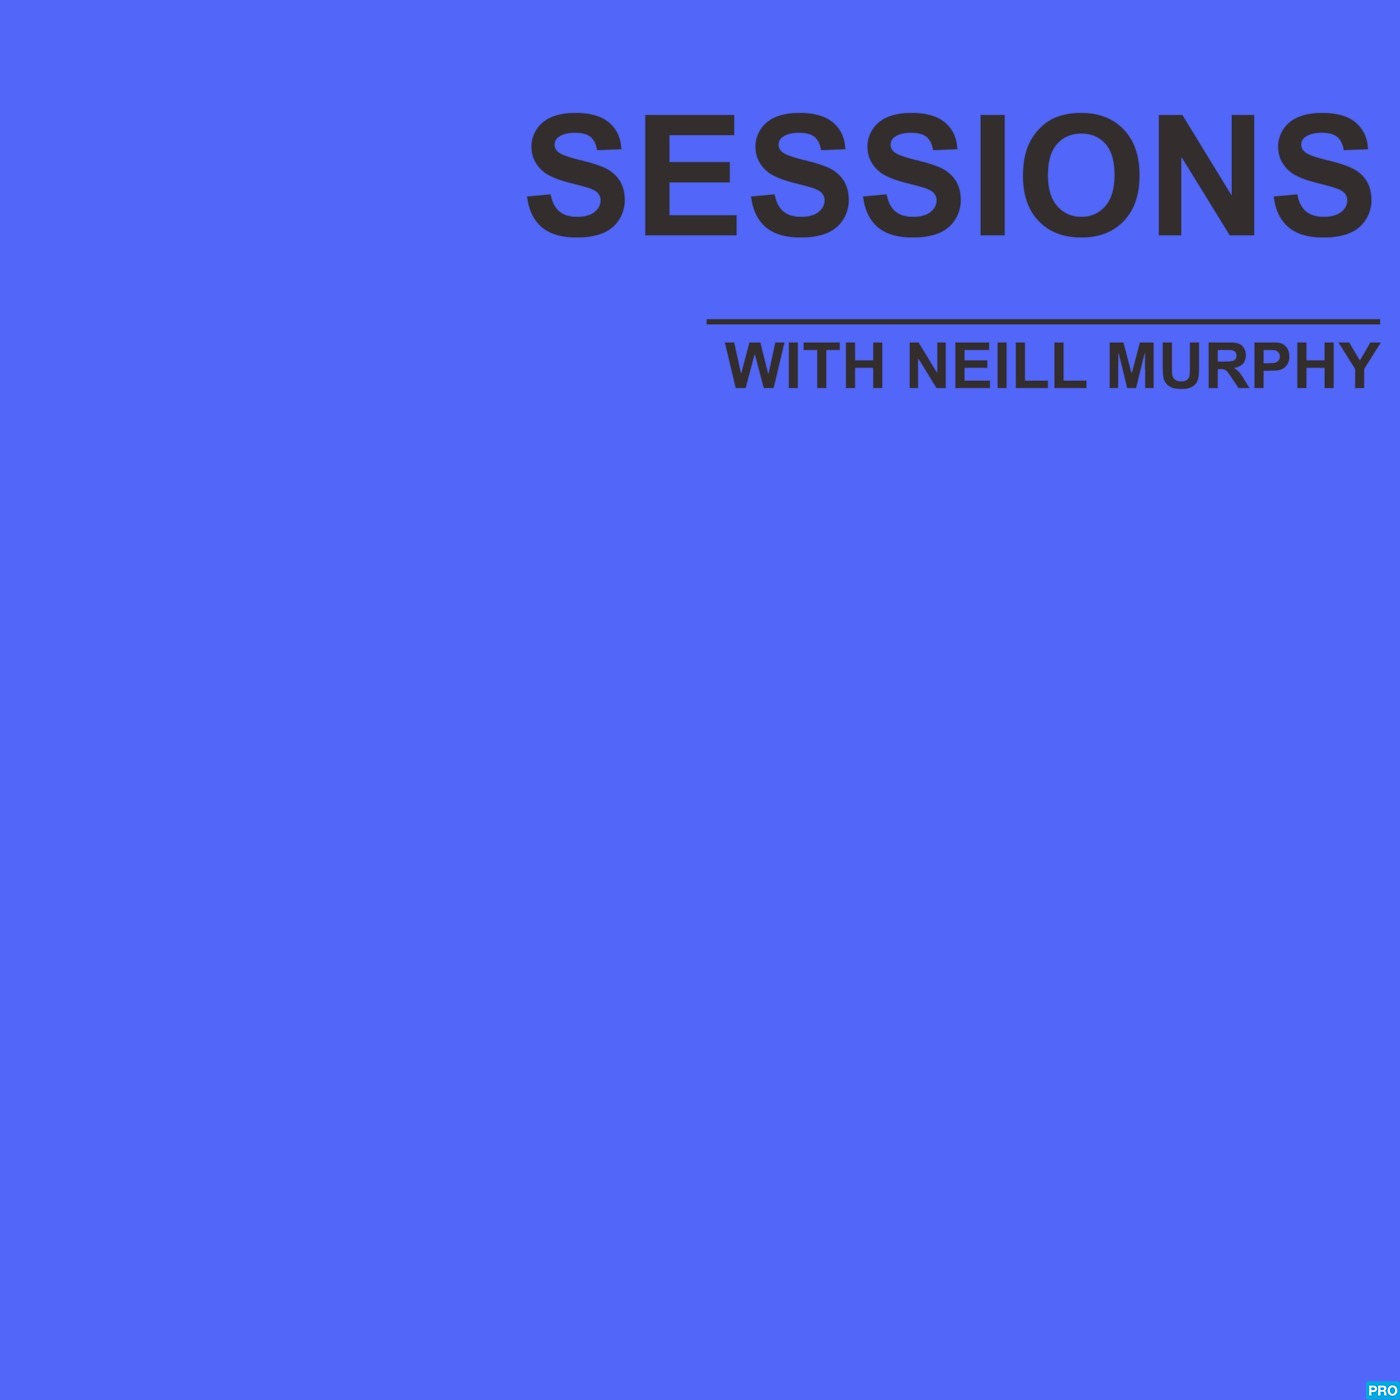 Sessions with Neill Murphy